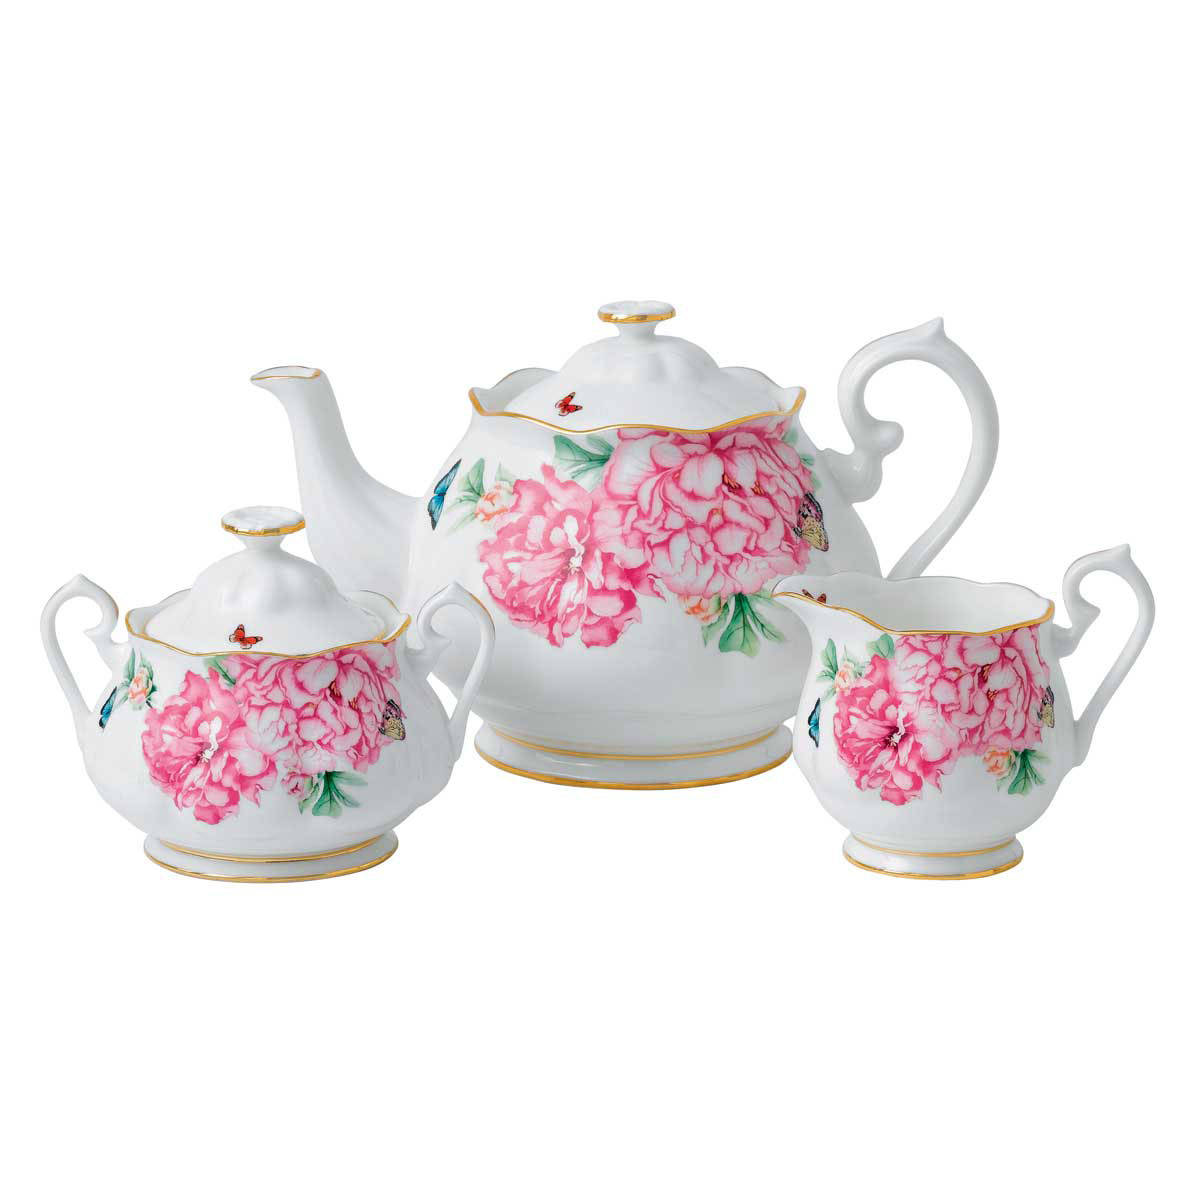 Miranda Kerr For Royal Albert Friendship Teapot, Sugar and Creamer